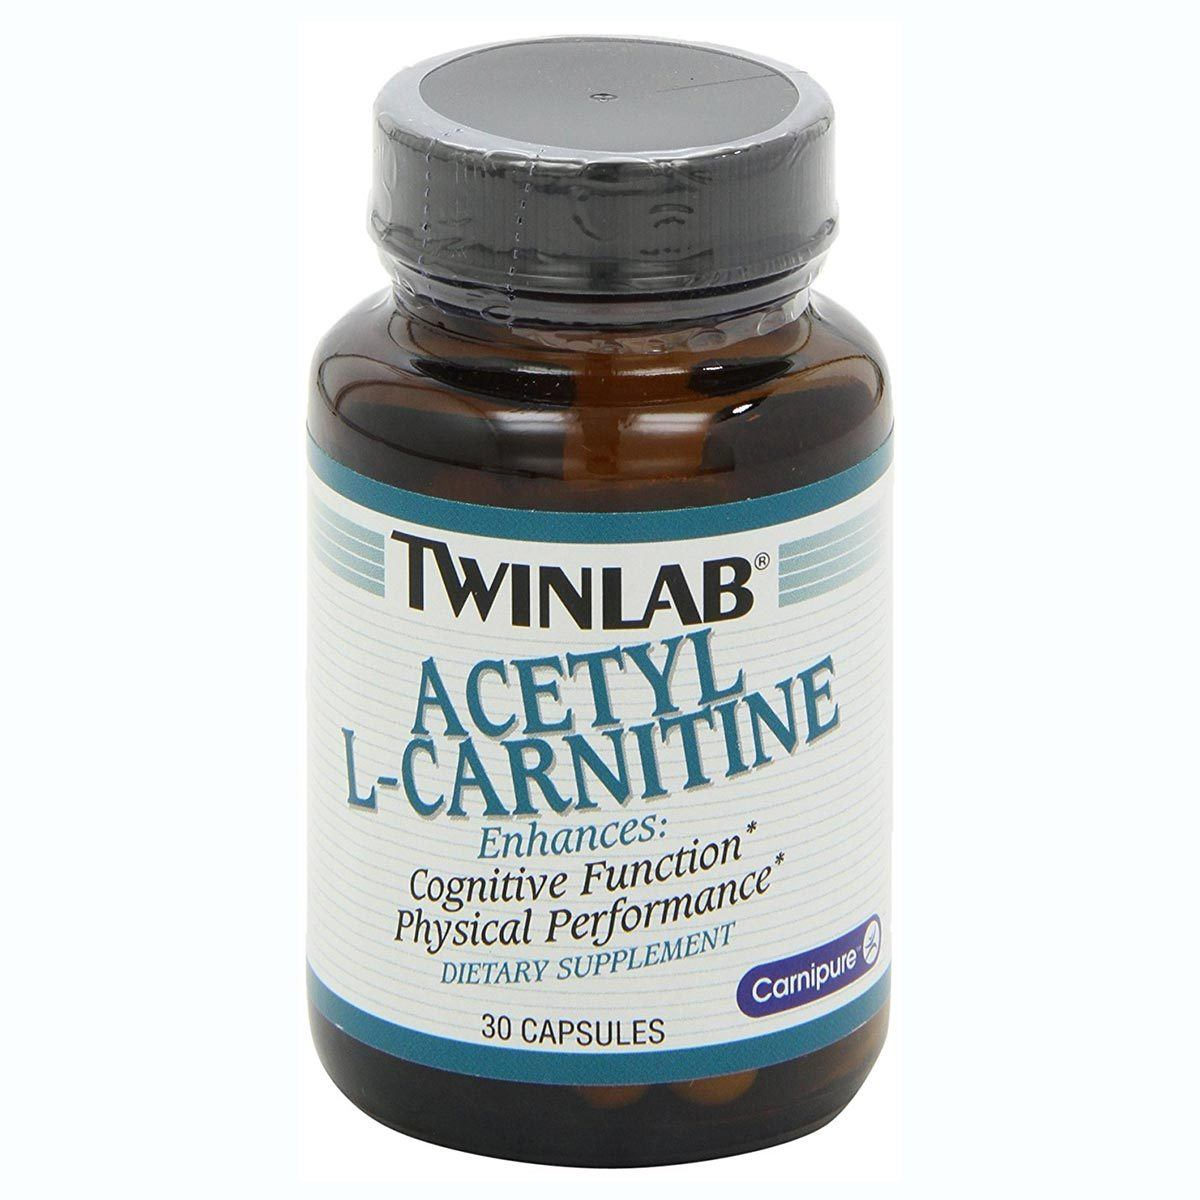 Twinlab Acetyl L-Carnitine 30 Capsules Amino Acids Twinlab  (1058621423659)